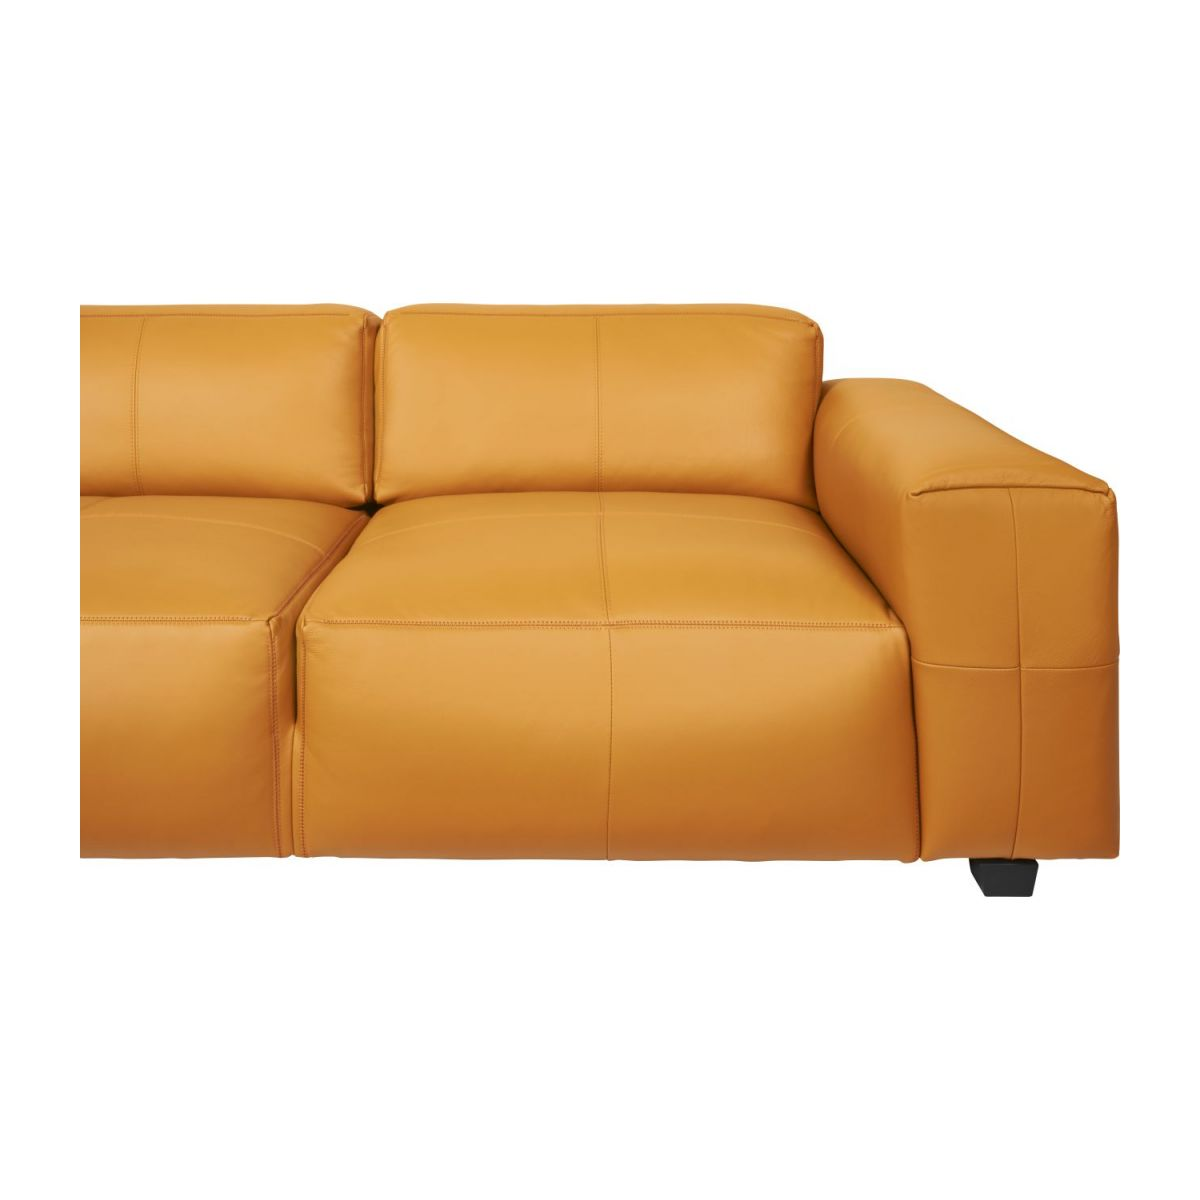 2 seater sofa in Savoy semi-aniline leather, cognac n°8